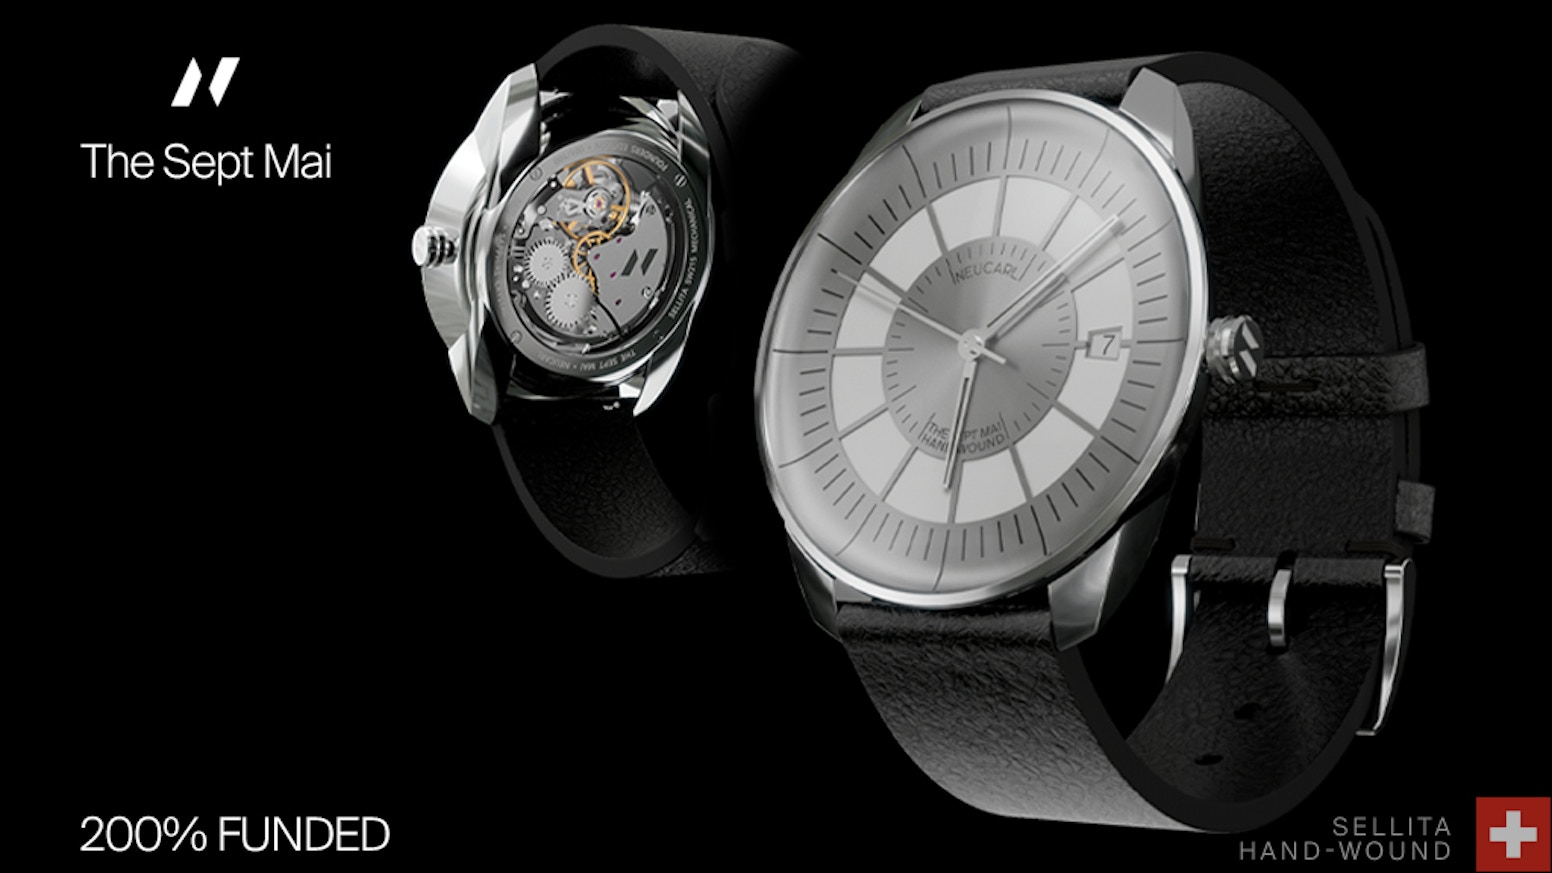 The Sept Mai Watch borrows from the past and the future to capture the moment. Industrial aesthetics, by Neucarl Watches